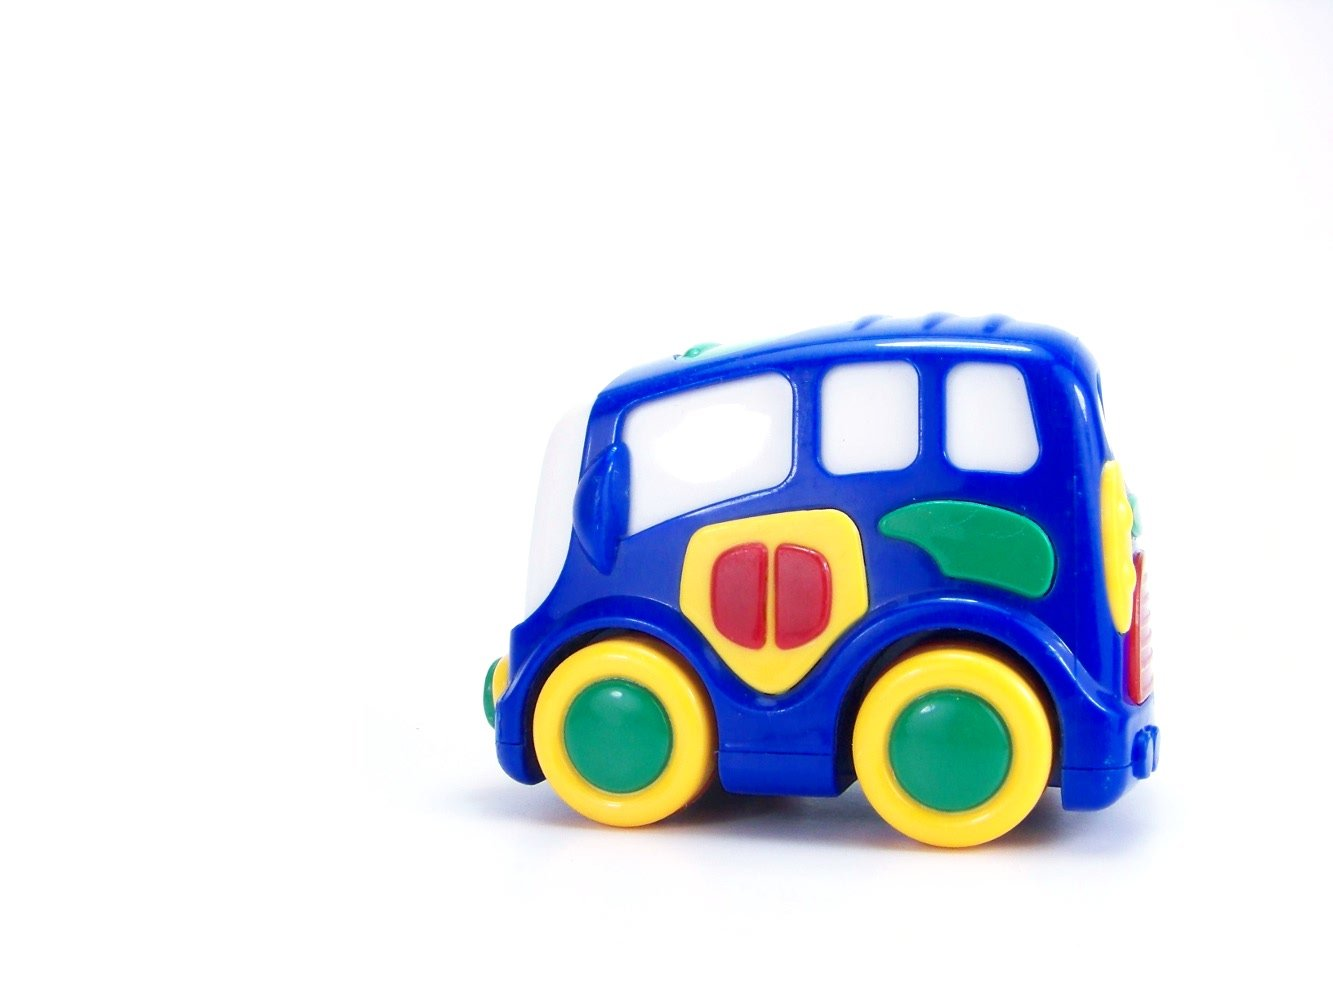 Colorful Toy Car, Artificial, Road, Move, Plastic, HQ Photo